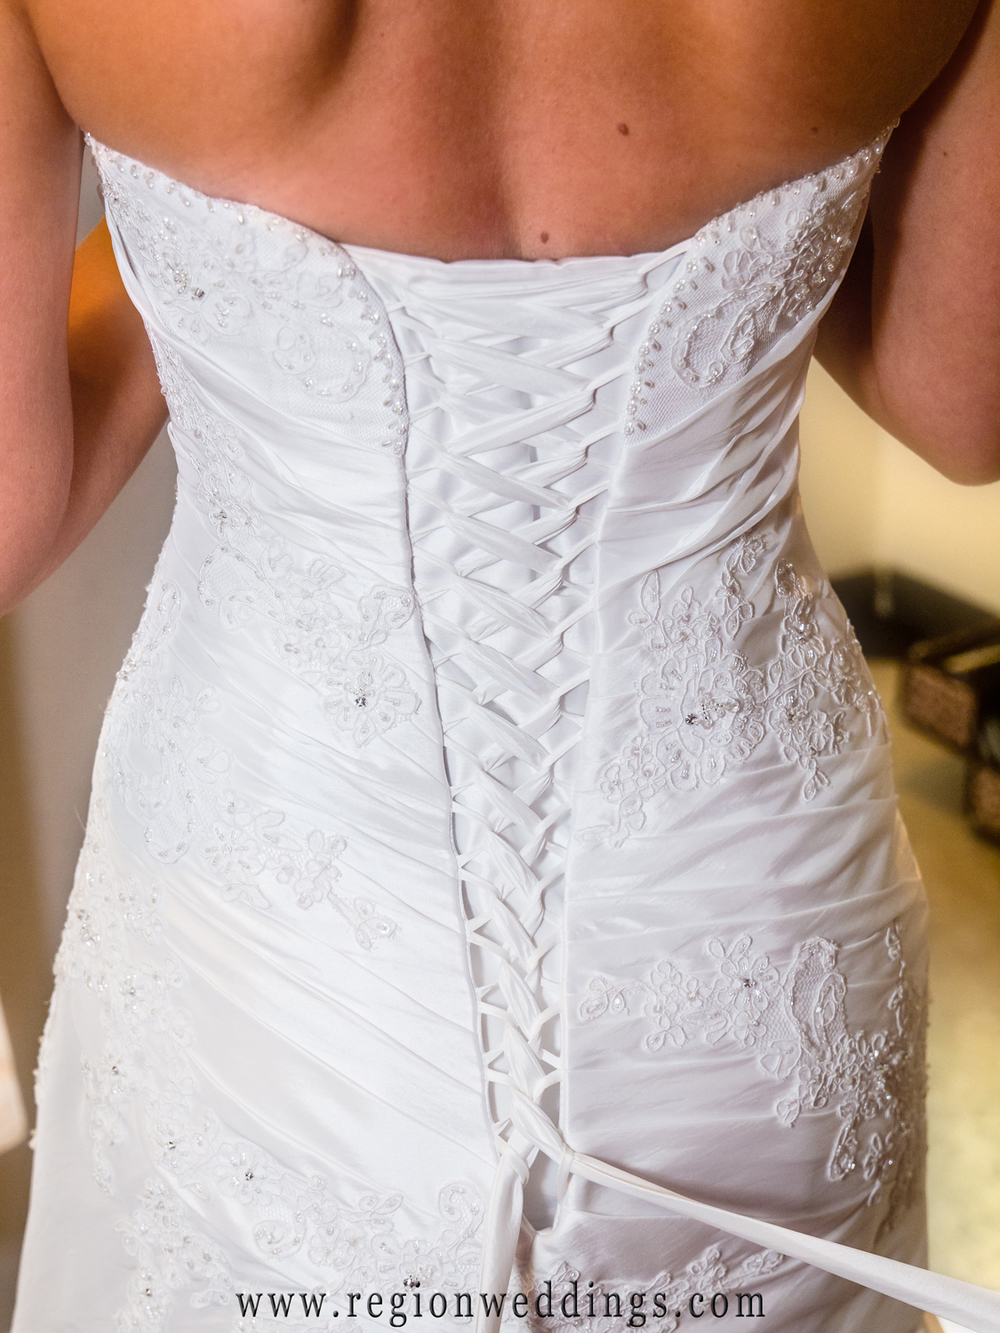 The lacings of a stunning white wedding dress.